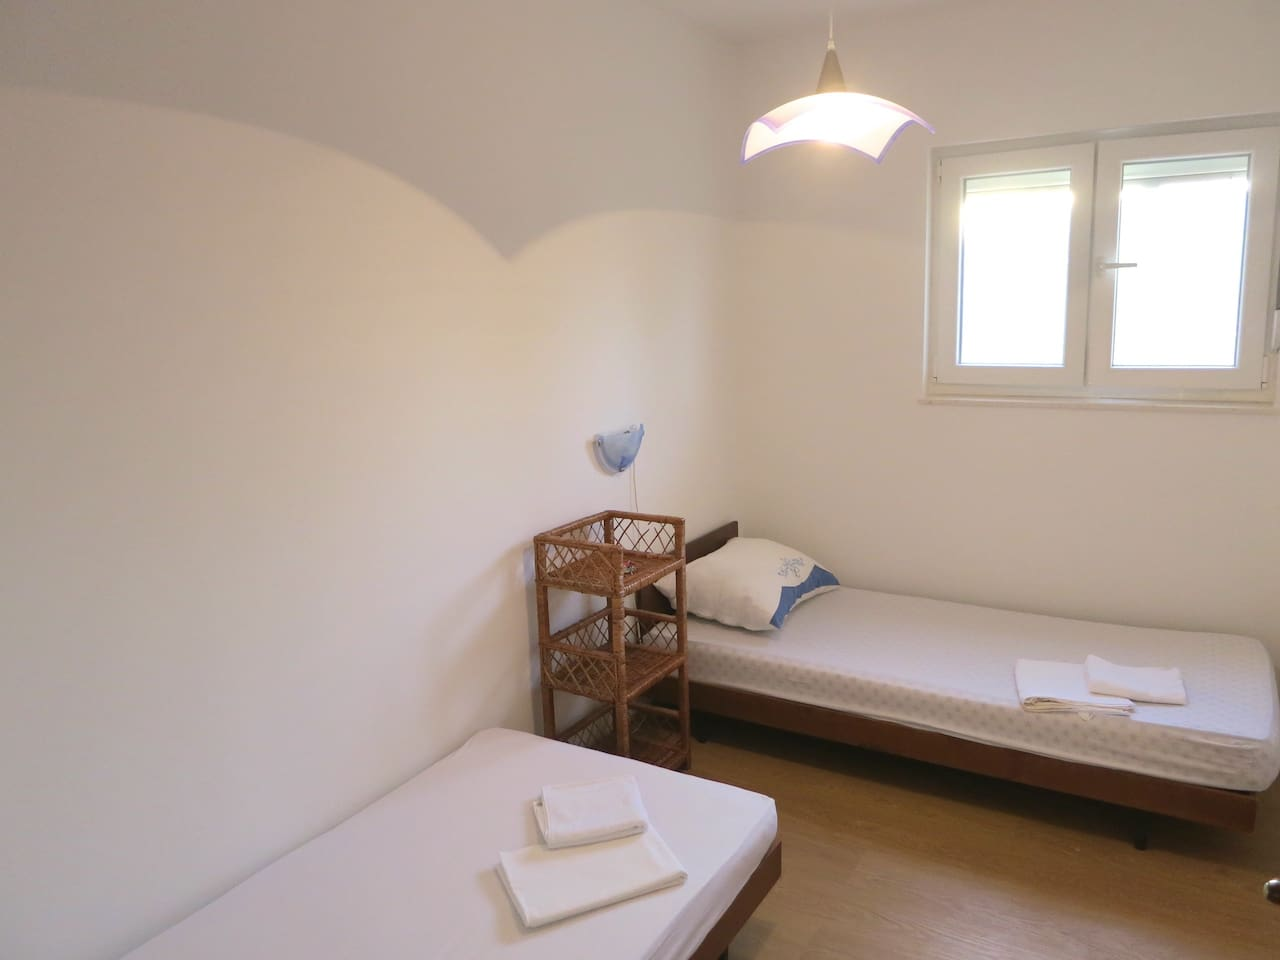 This nice and clean room has two individual beds and its own bathroom